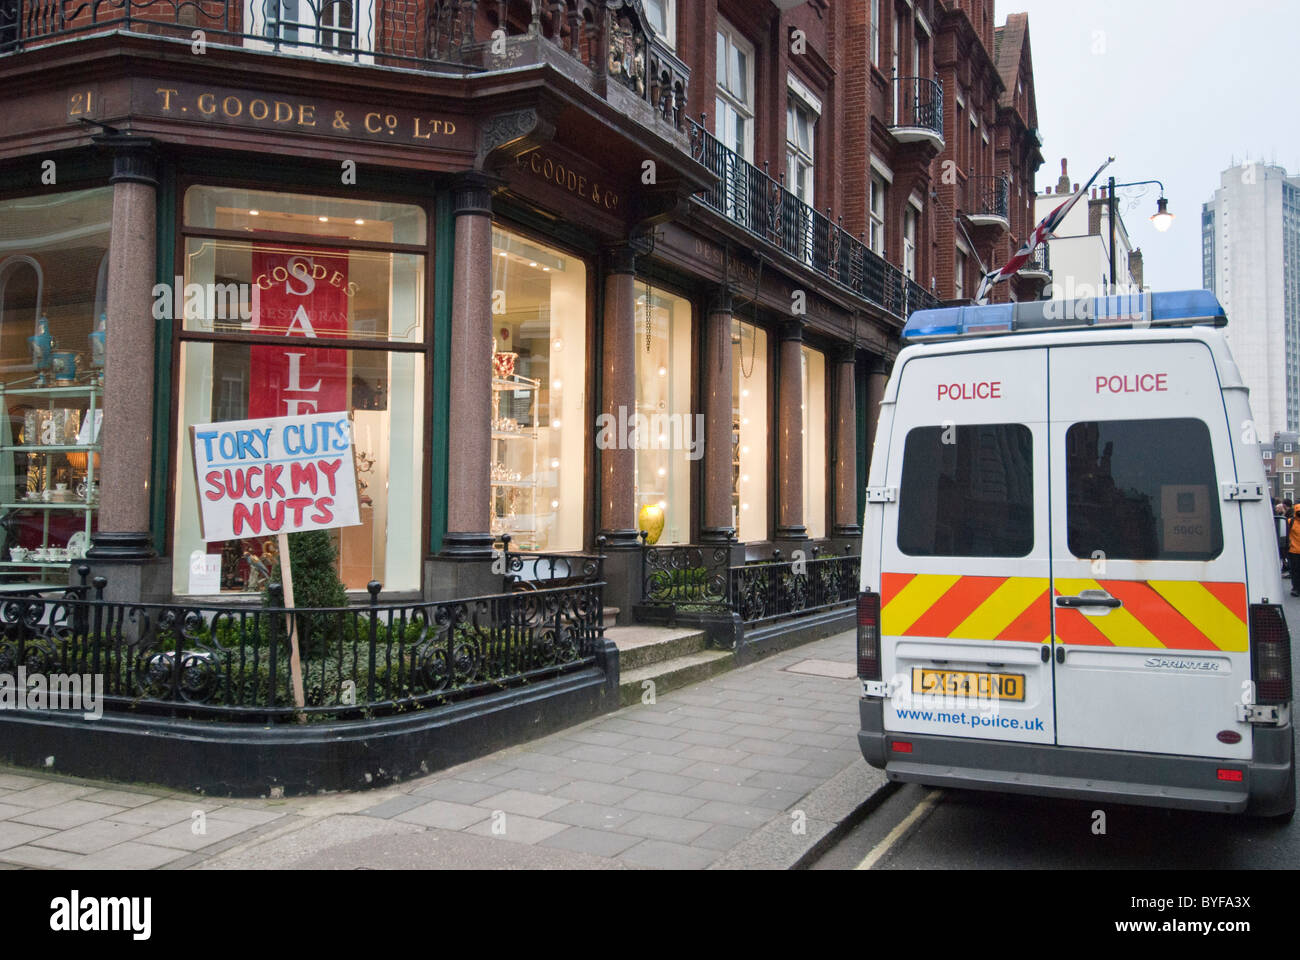 'Tory Cuts Suck my Nuts'  protest banner outside Thomas Goode fine china store South Audley Street W1 London. - Stock Image